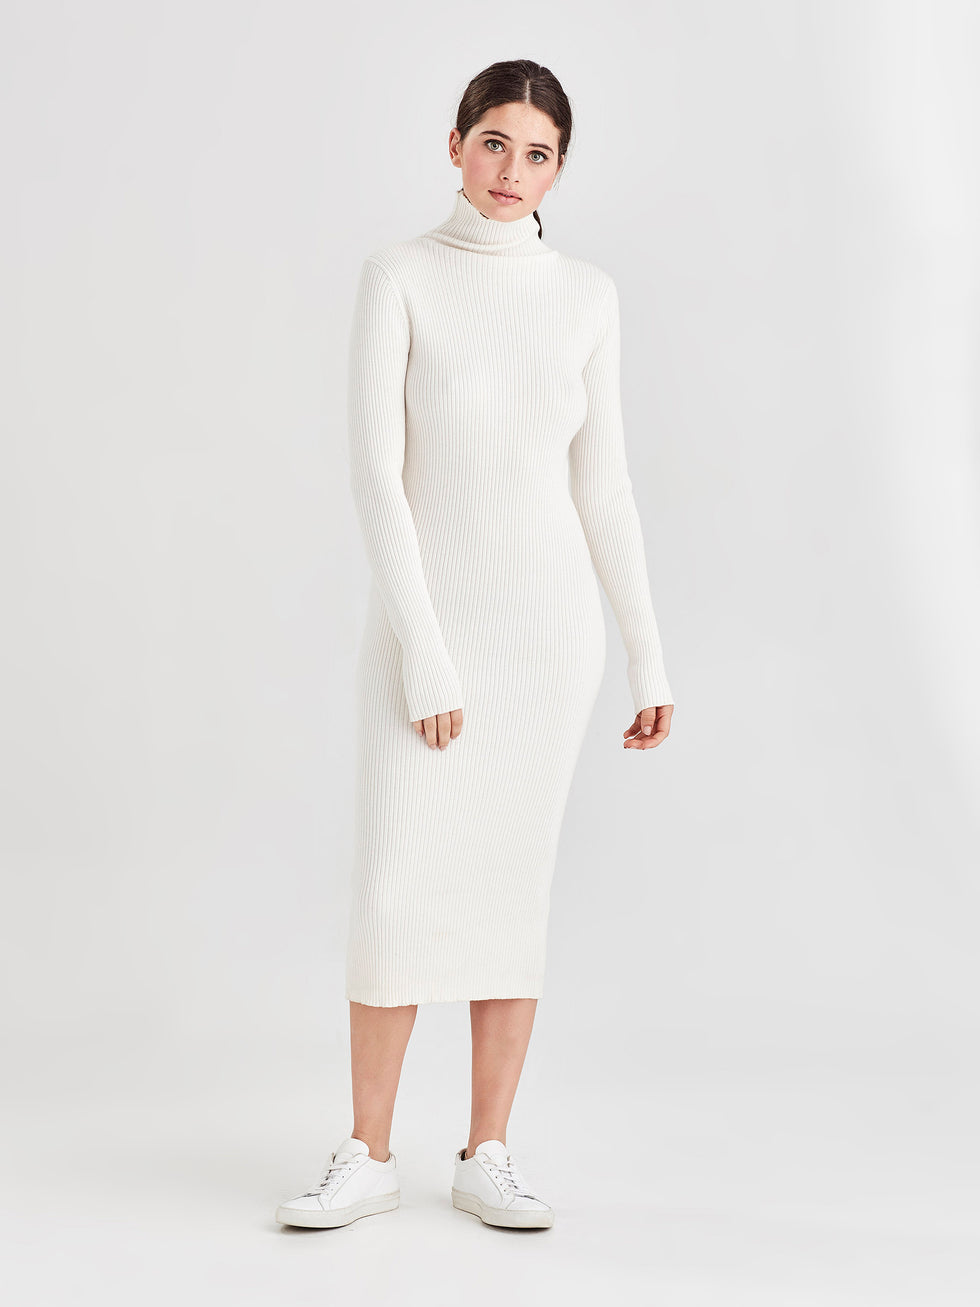 Apres Rib Dress (Cotton Cash Rib) Snow